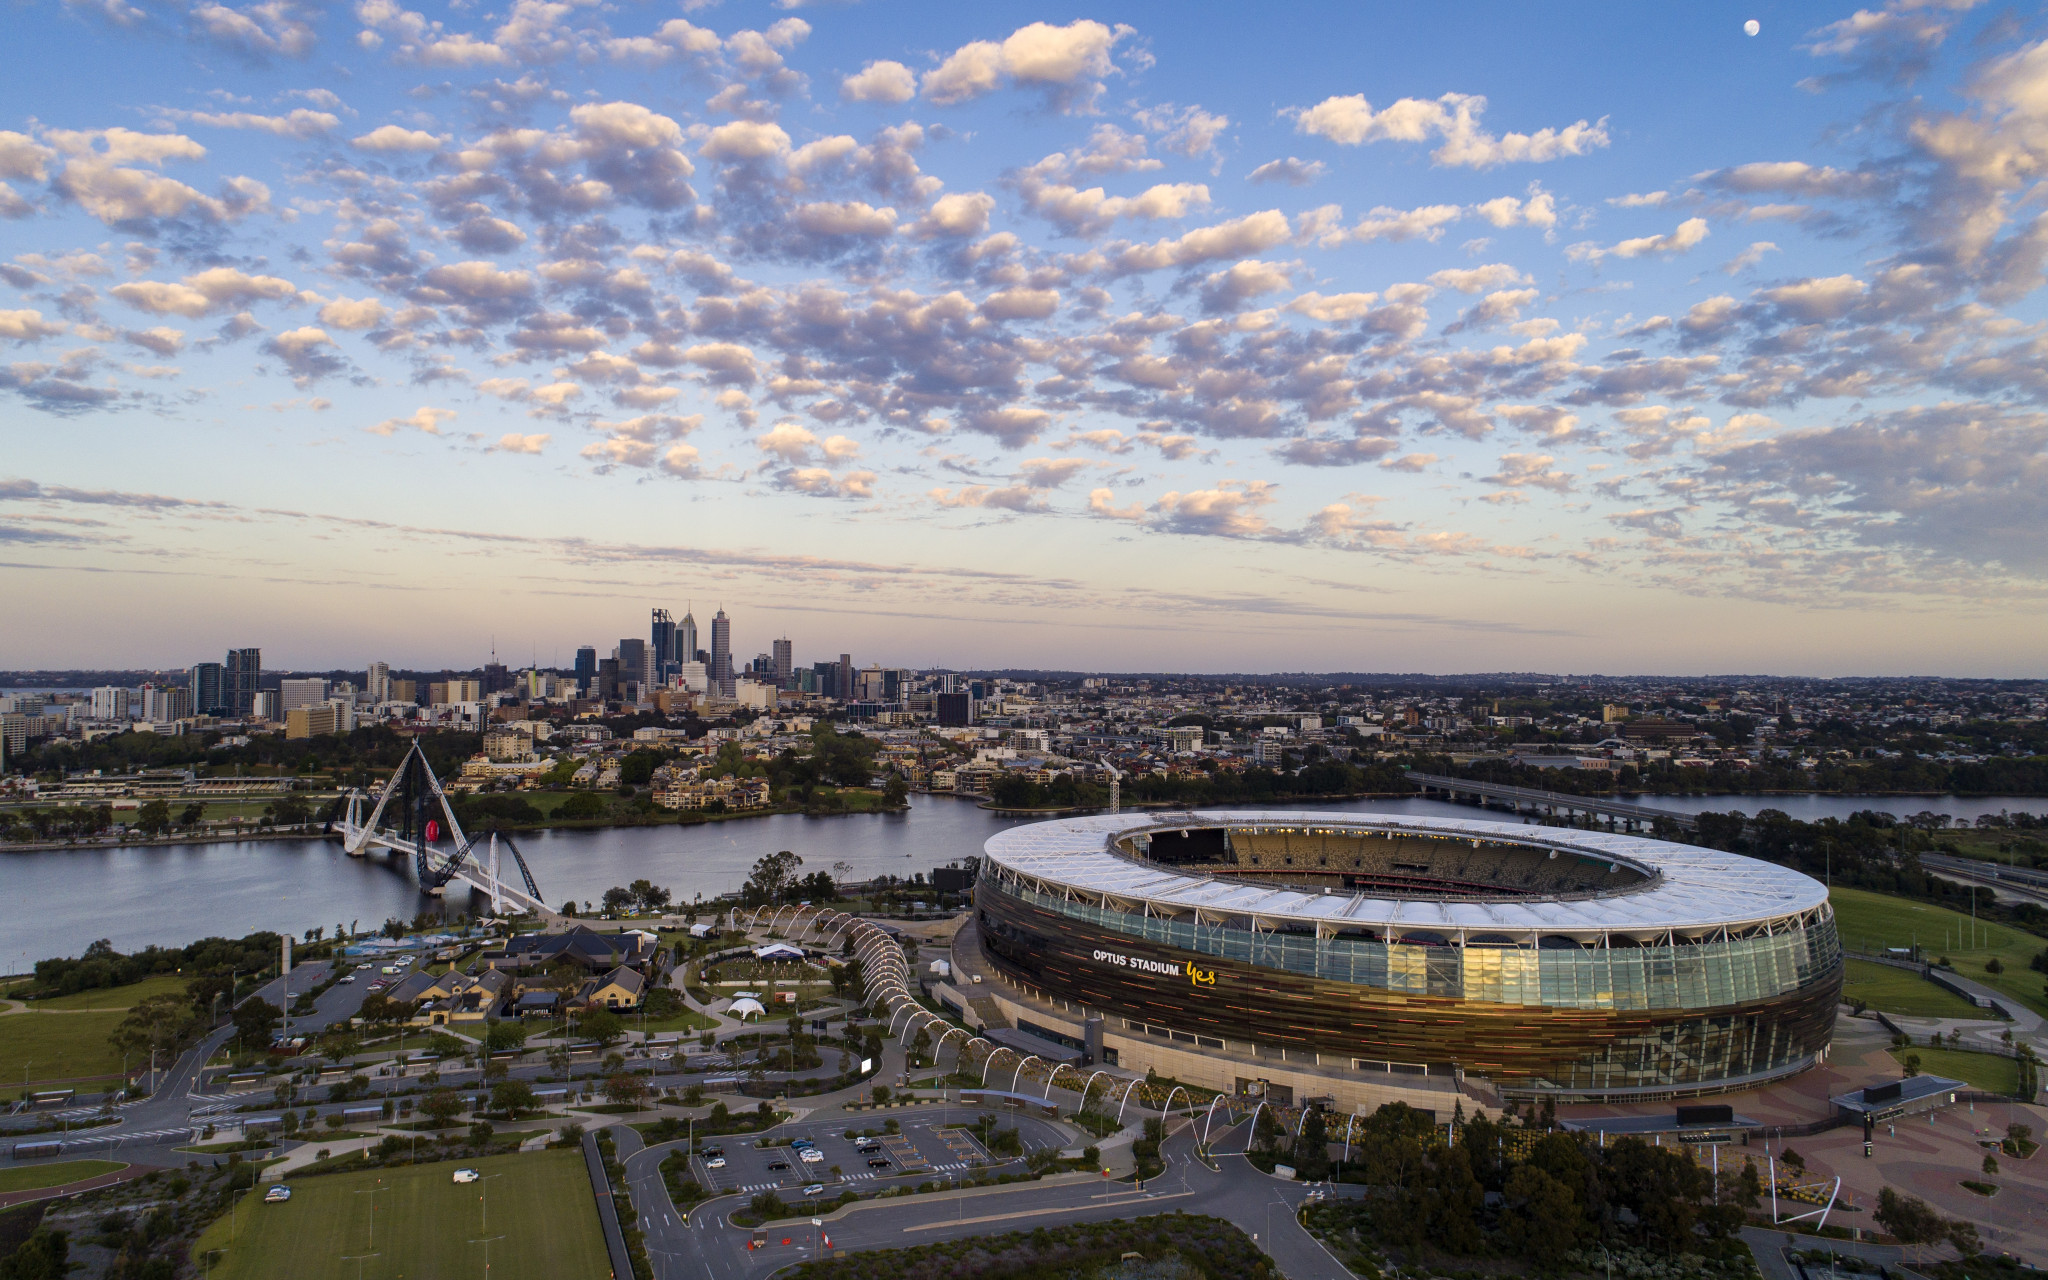 Optus Stadium, which was built in 2018, would likely act as the main venue if the city was successful in a 2026 Commonwealth Games bid ©Getty Images